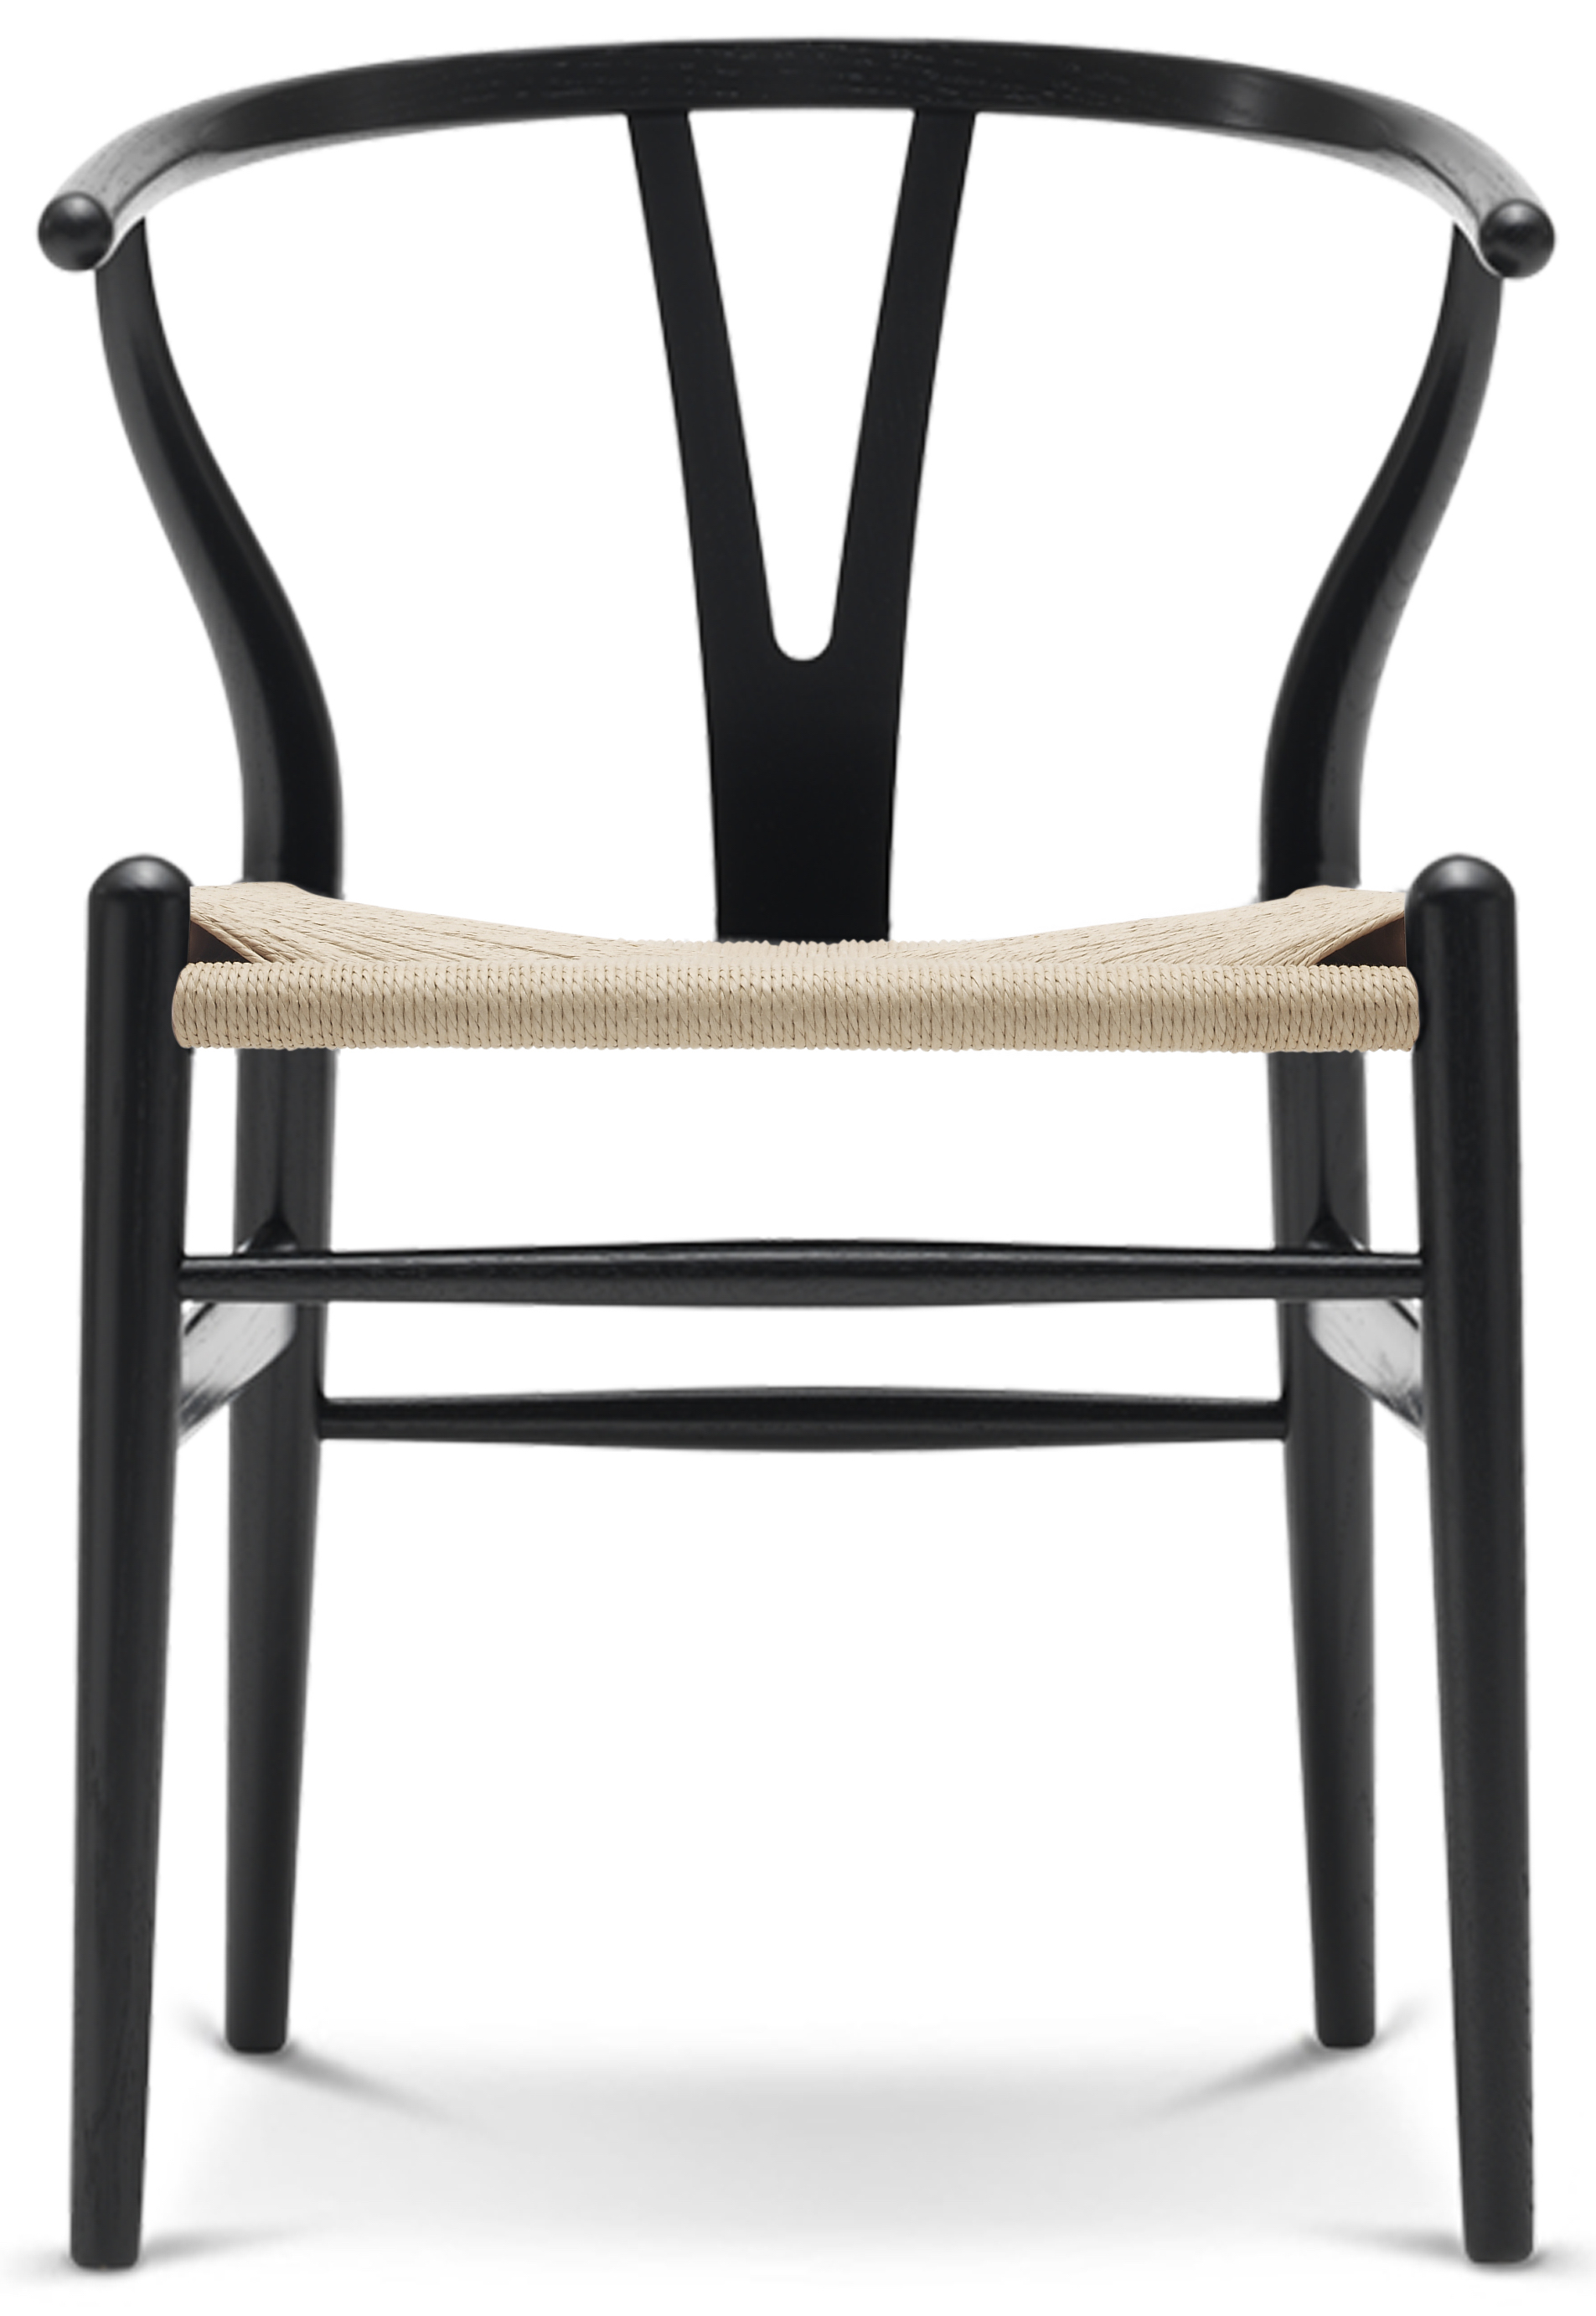 Carl Hansen Søn 110 Years Campaign Wishbone Chair With New